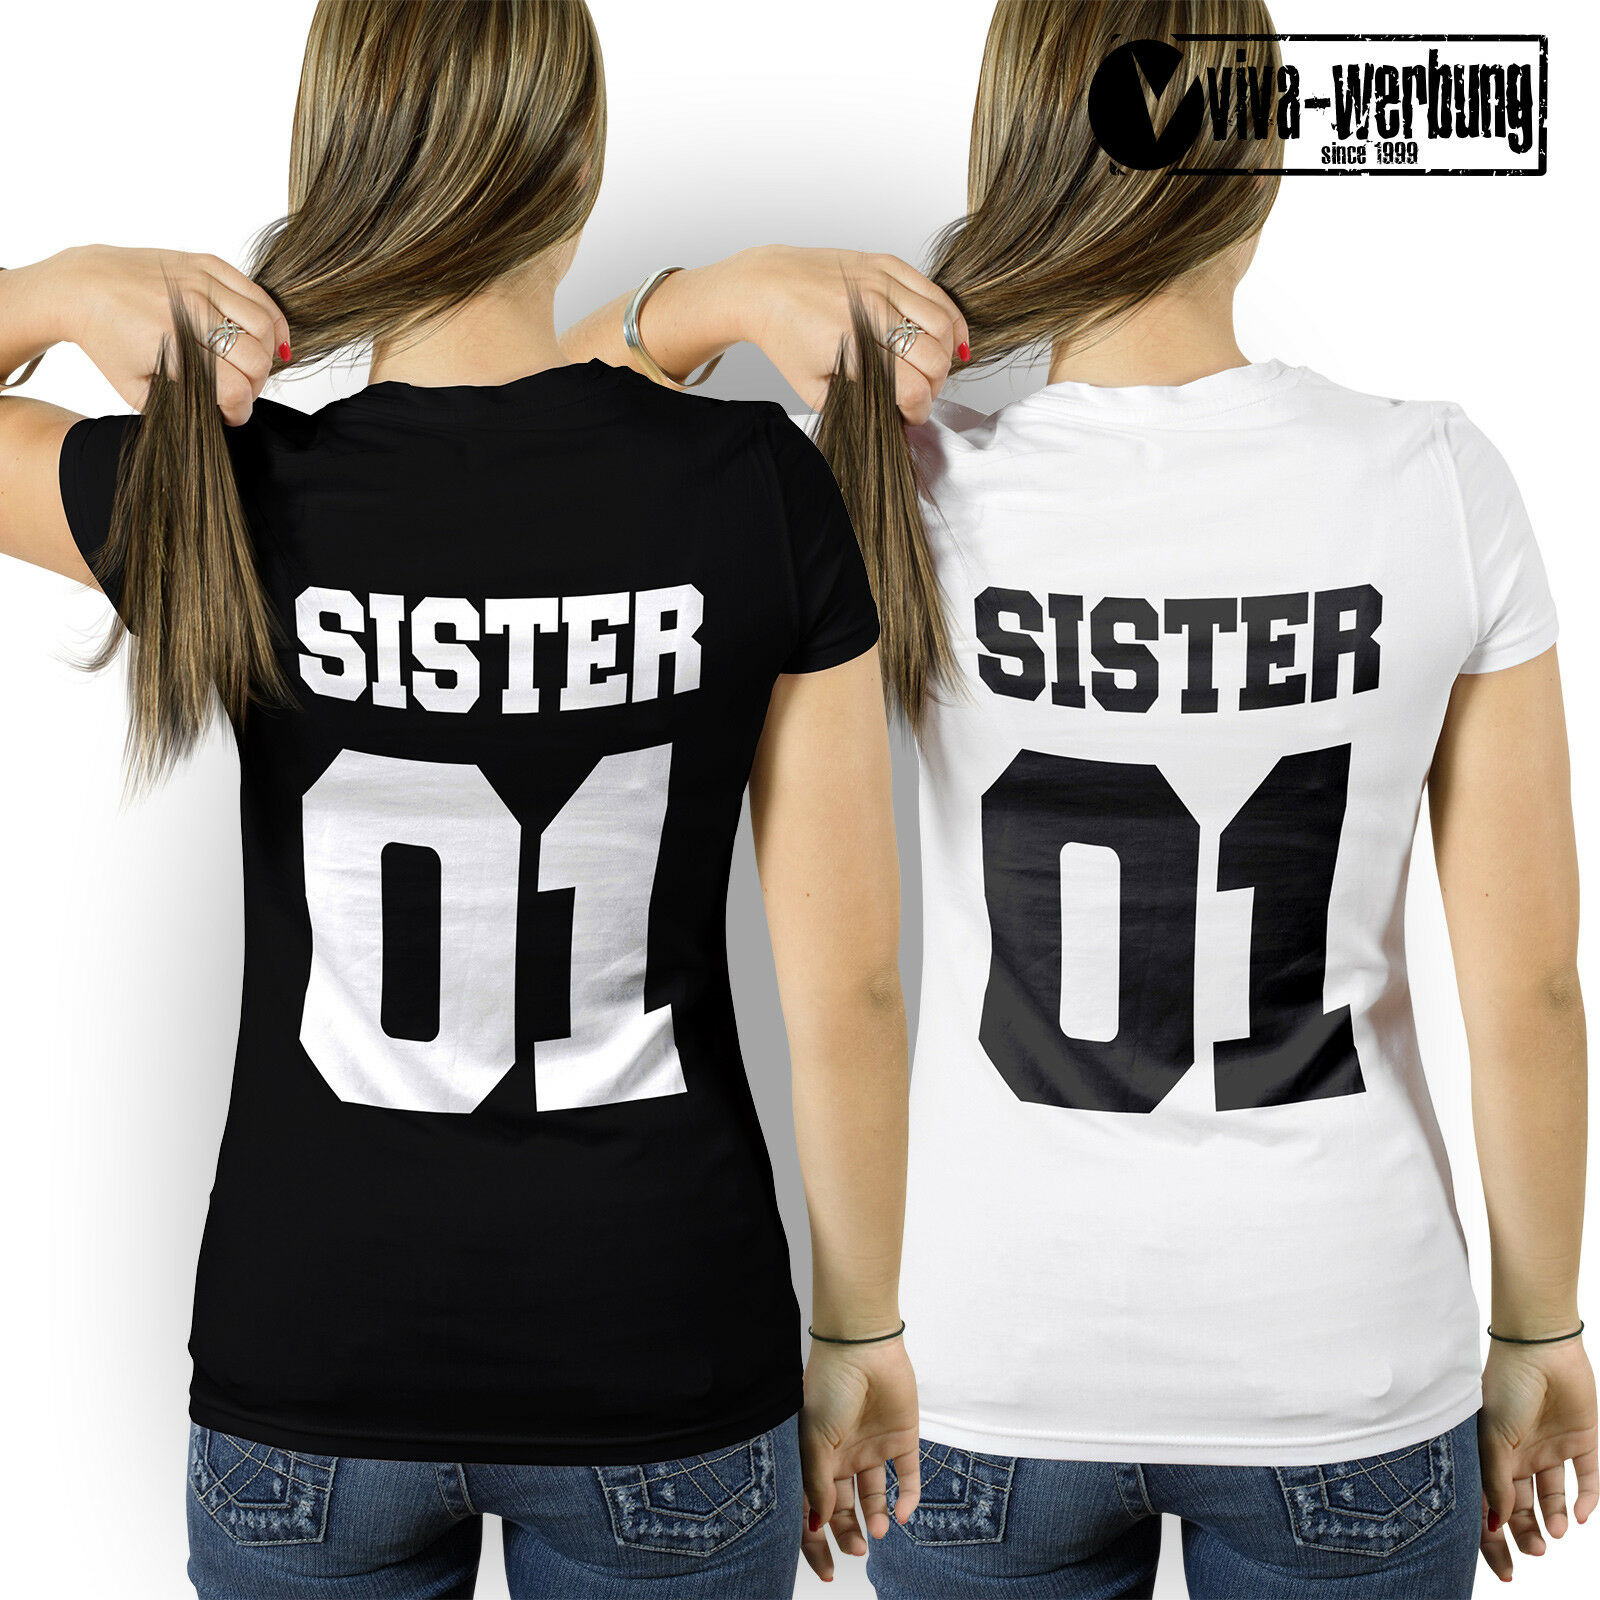 sister 01 t shirt best friends freunde t shirt f r beste. Black Bedroom Furniture Sets. Home Design Ideas